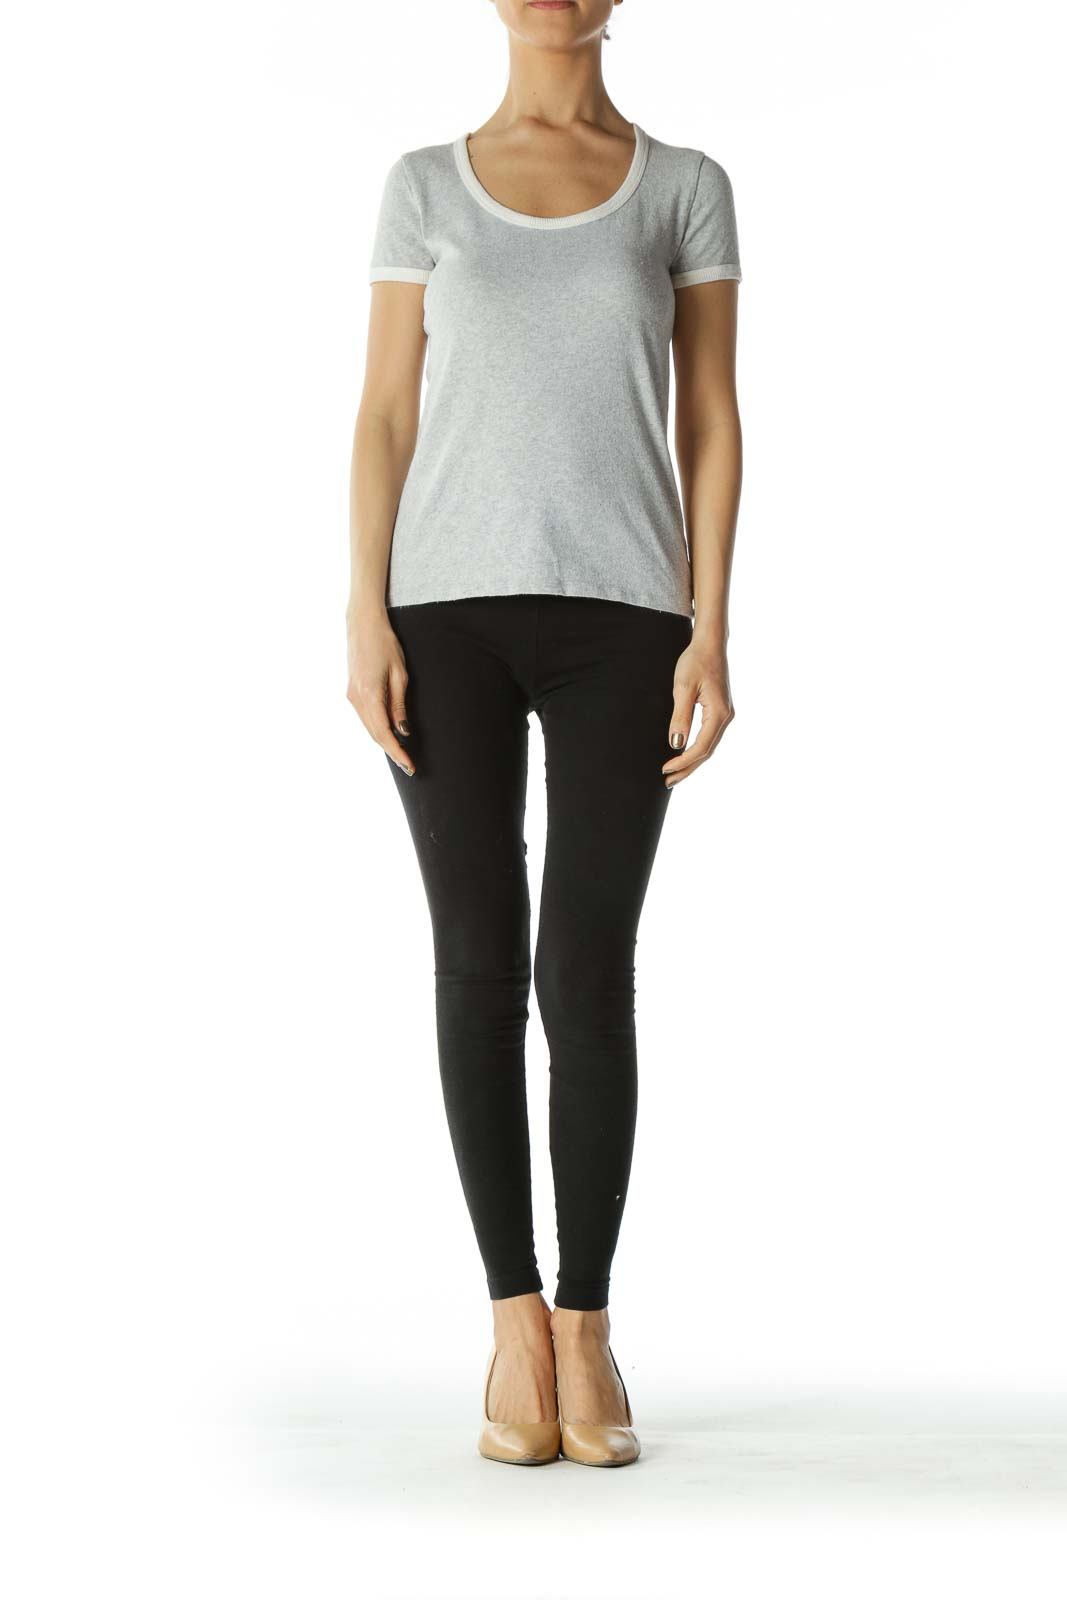 Grey Scoop-Neck Tee with White Neck and Sleeve Bands